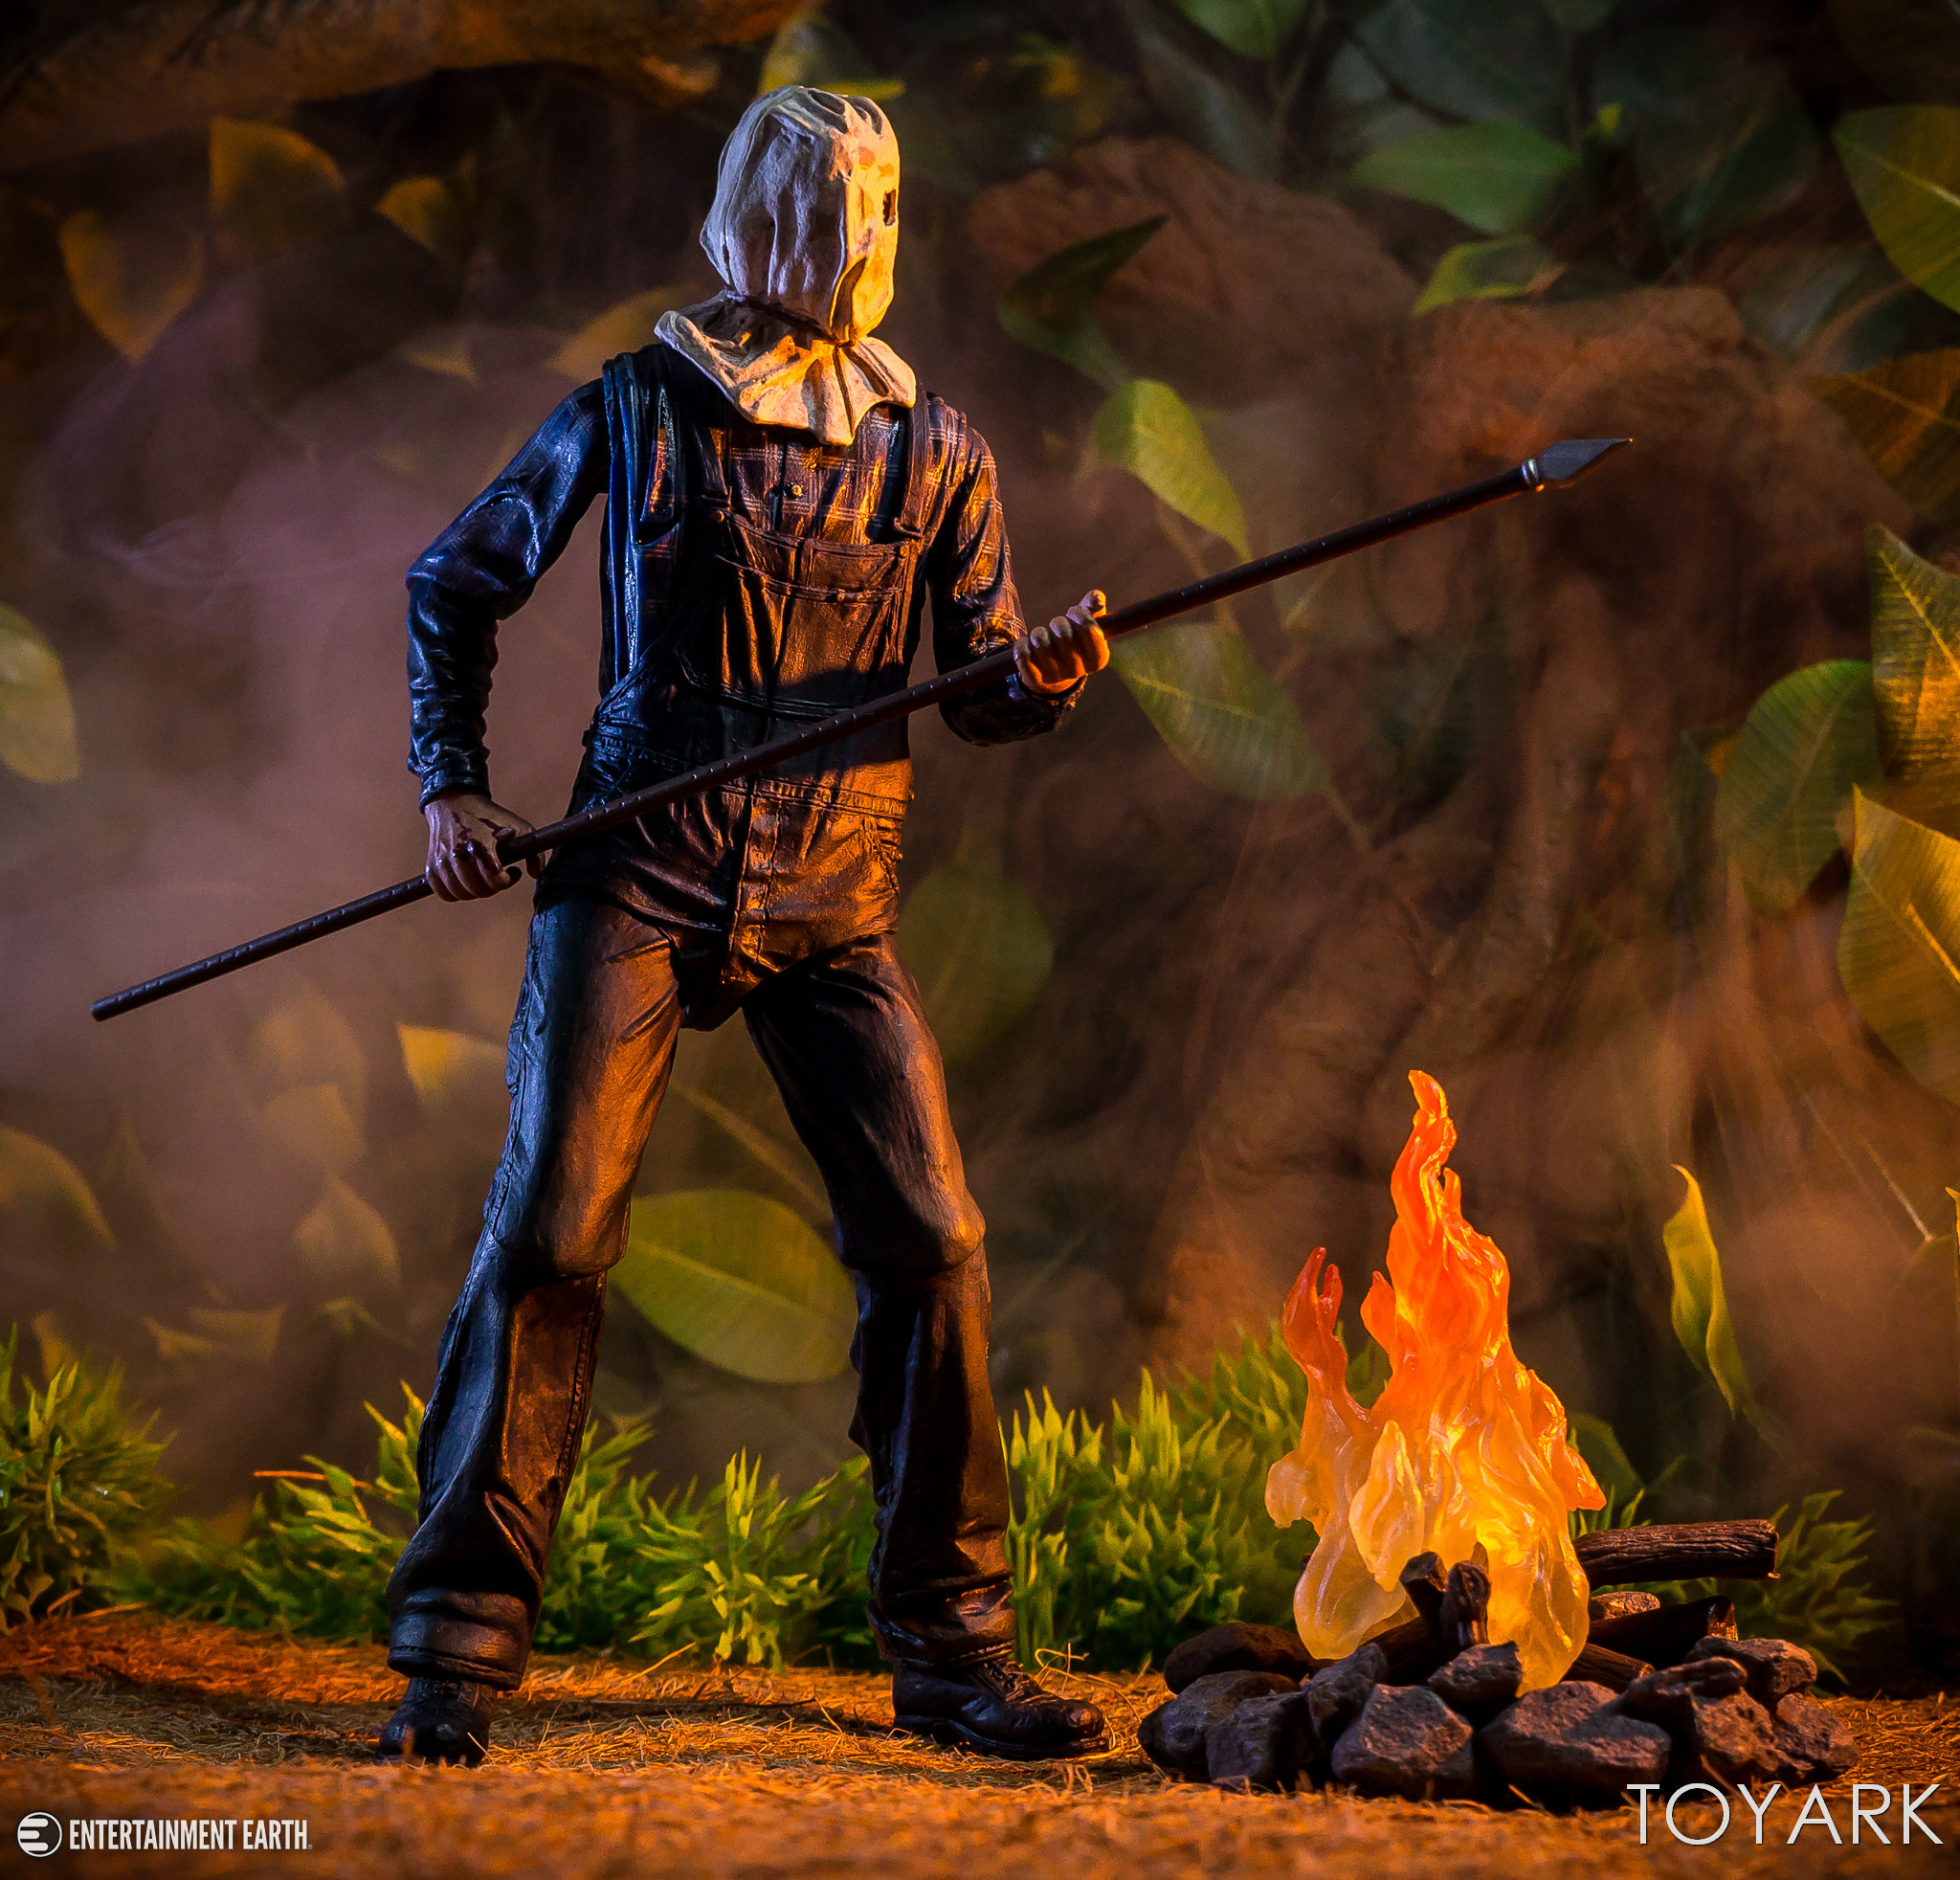 https://news.toyark.com/wp-content/uploads/sites/4/2018/08/NECA-Friday-the-13th-Part-2-Jason-009.jpg